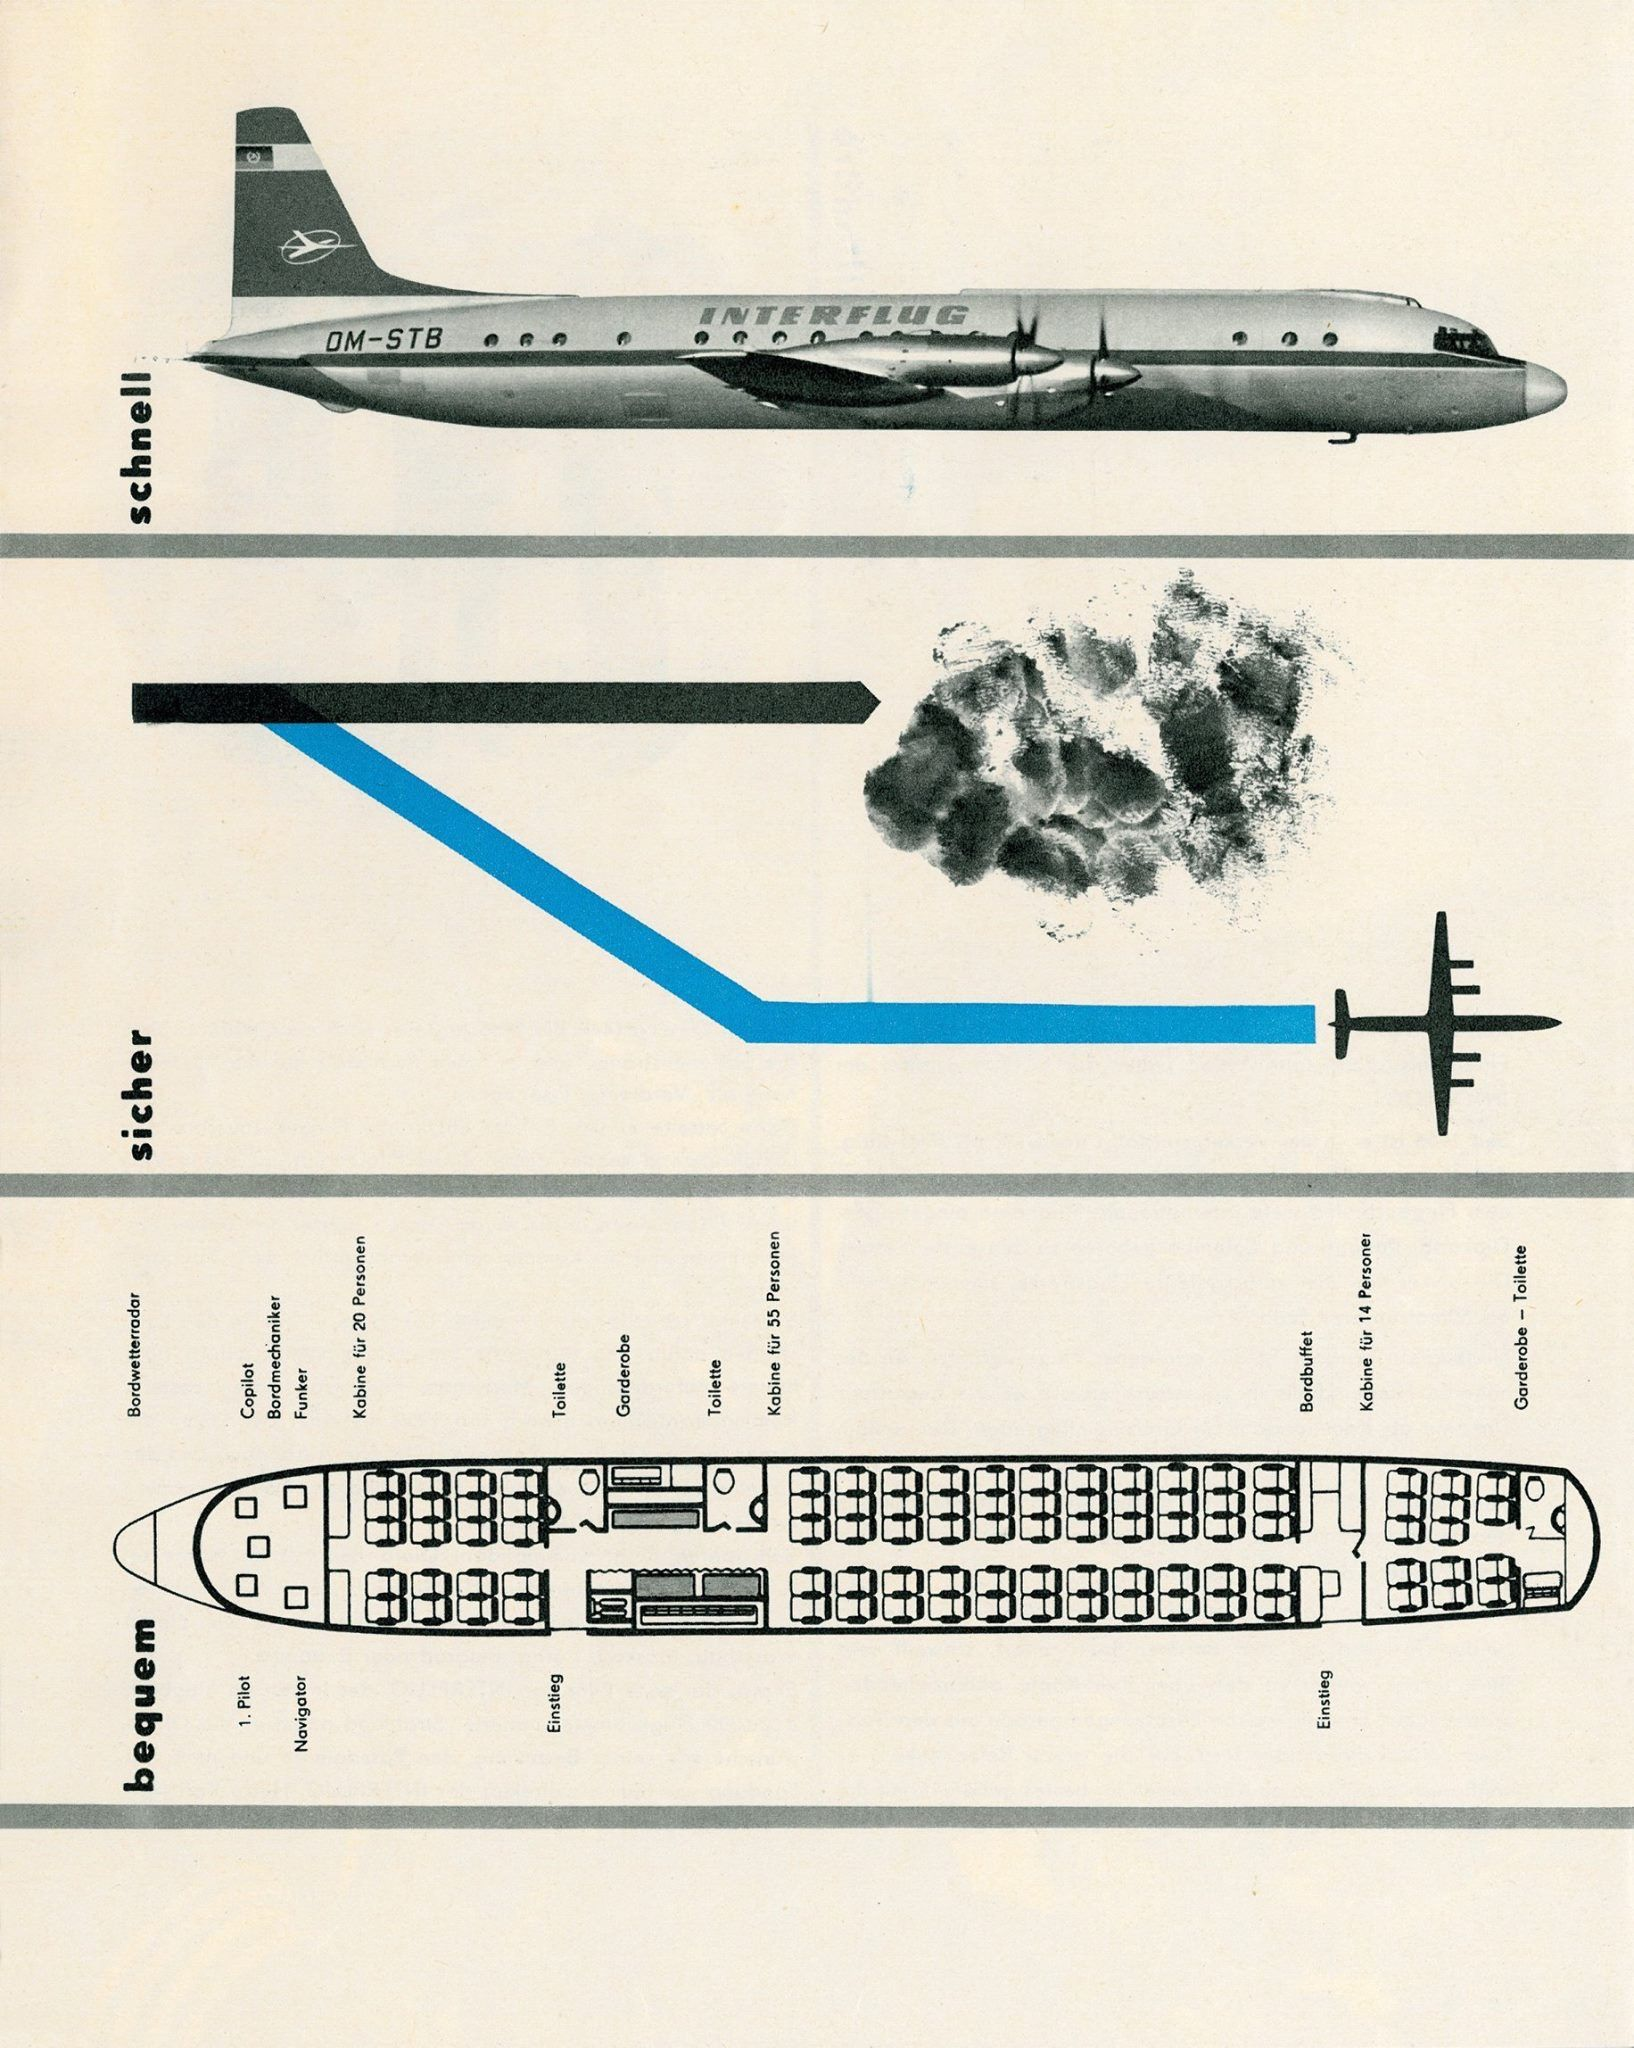 Cutaway of a pan am boeing 377 stratocruiser image from chris sloan - Interflug Il18 Seat Map